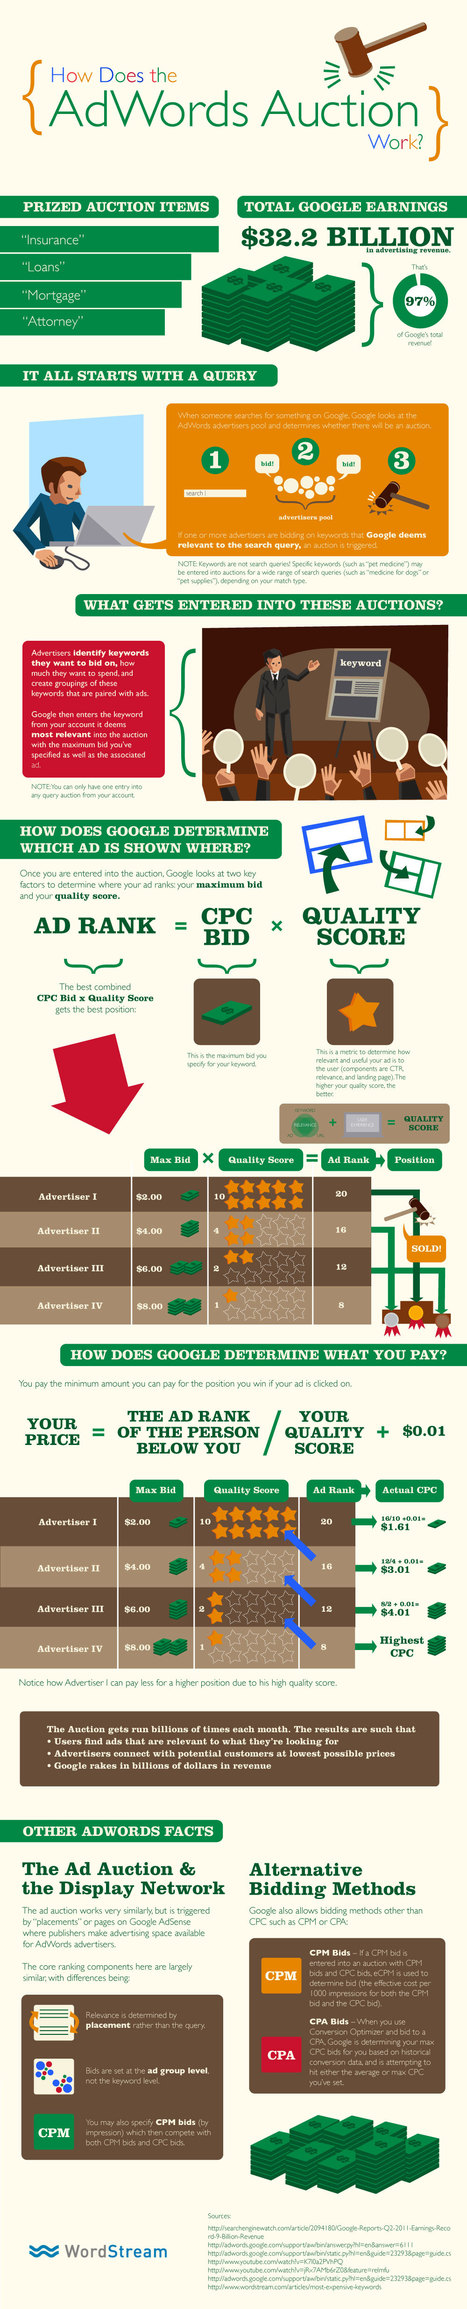 INFOGRAPHIC: What Is Google AdWords? How the AdWords Auction Works | WEBOLUTION! | Scoop.it